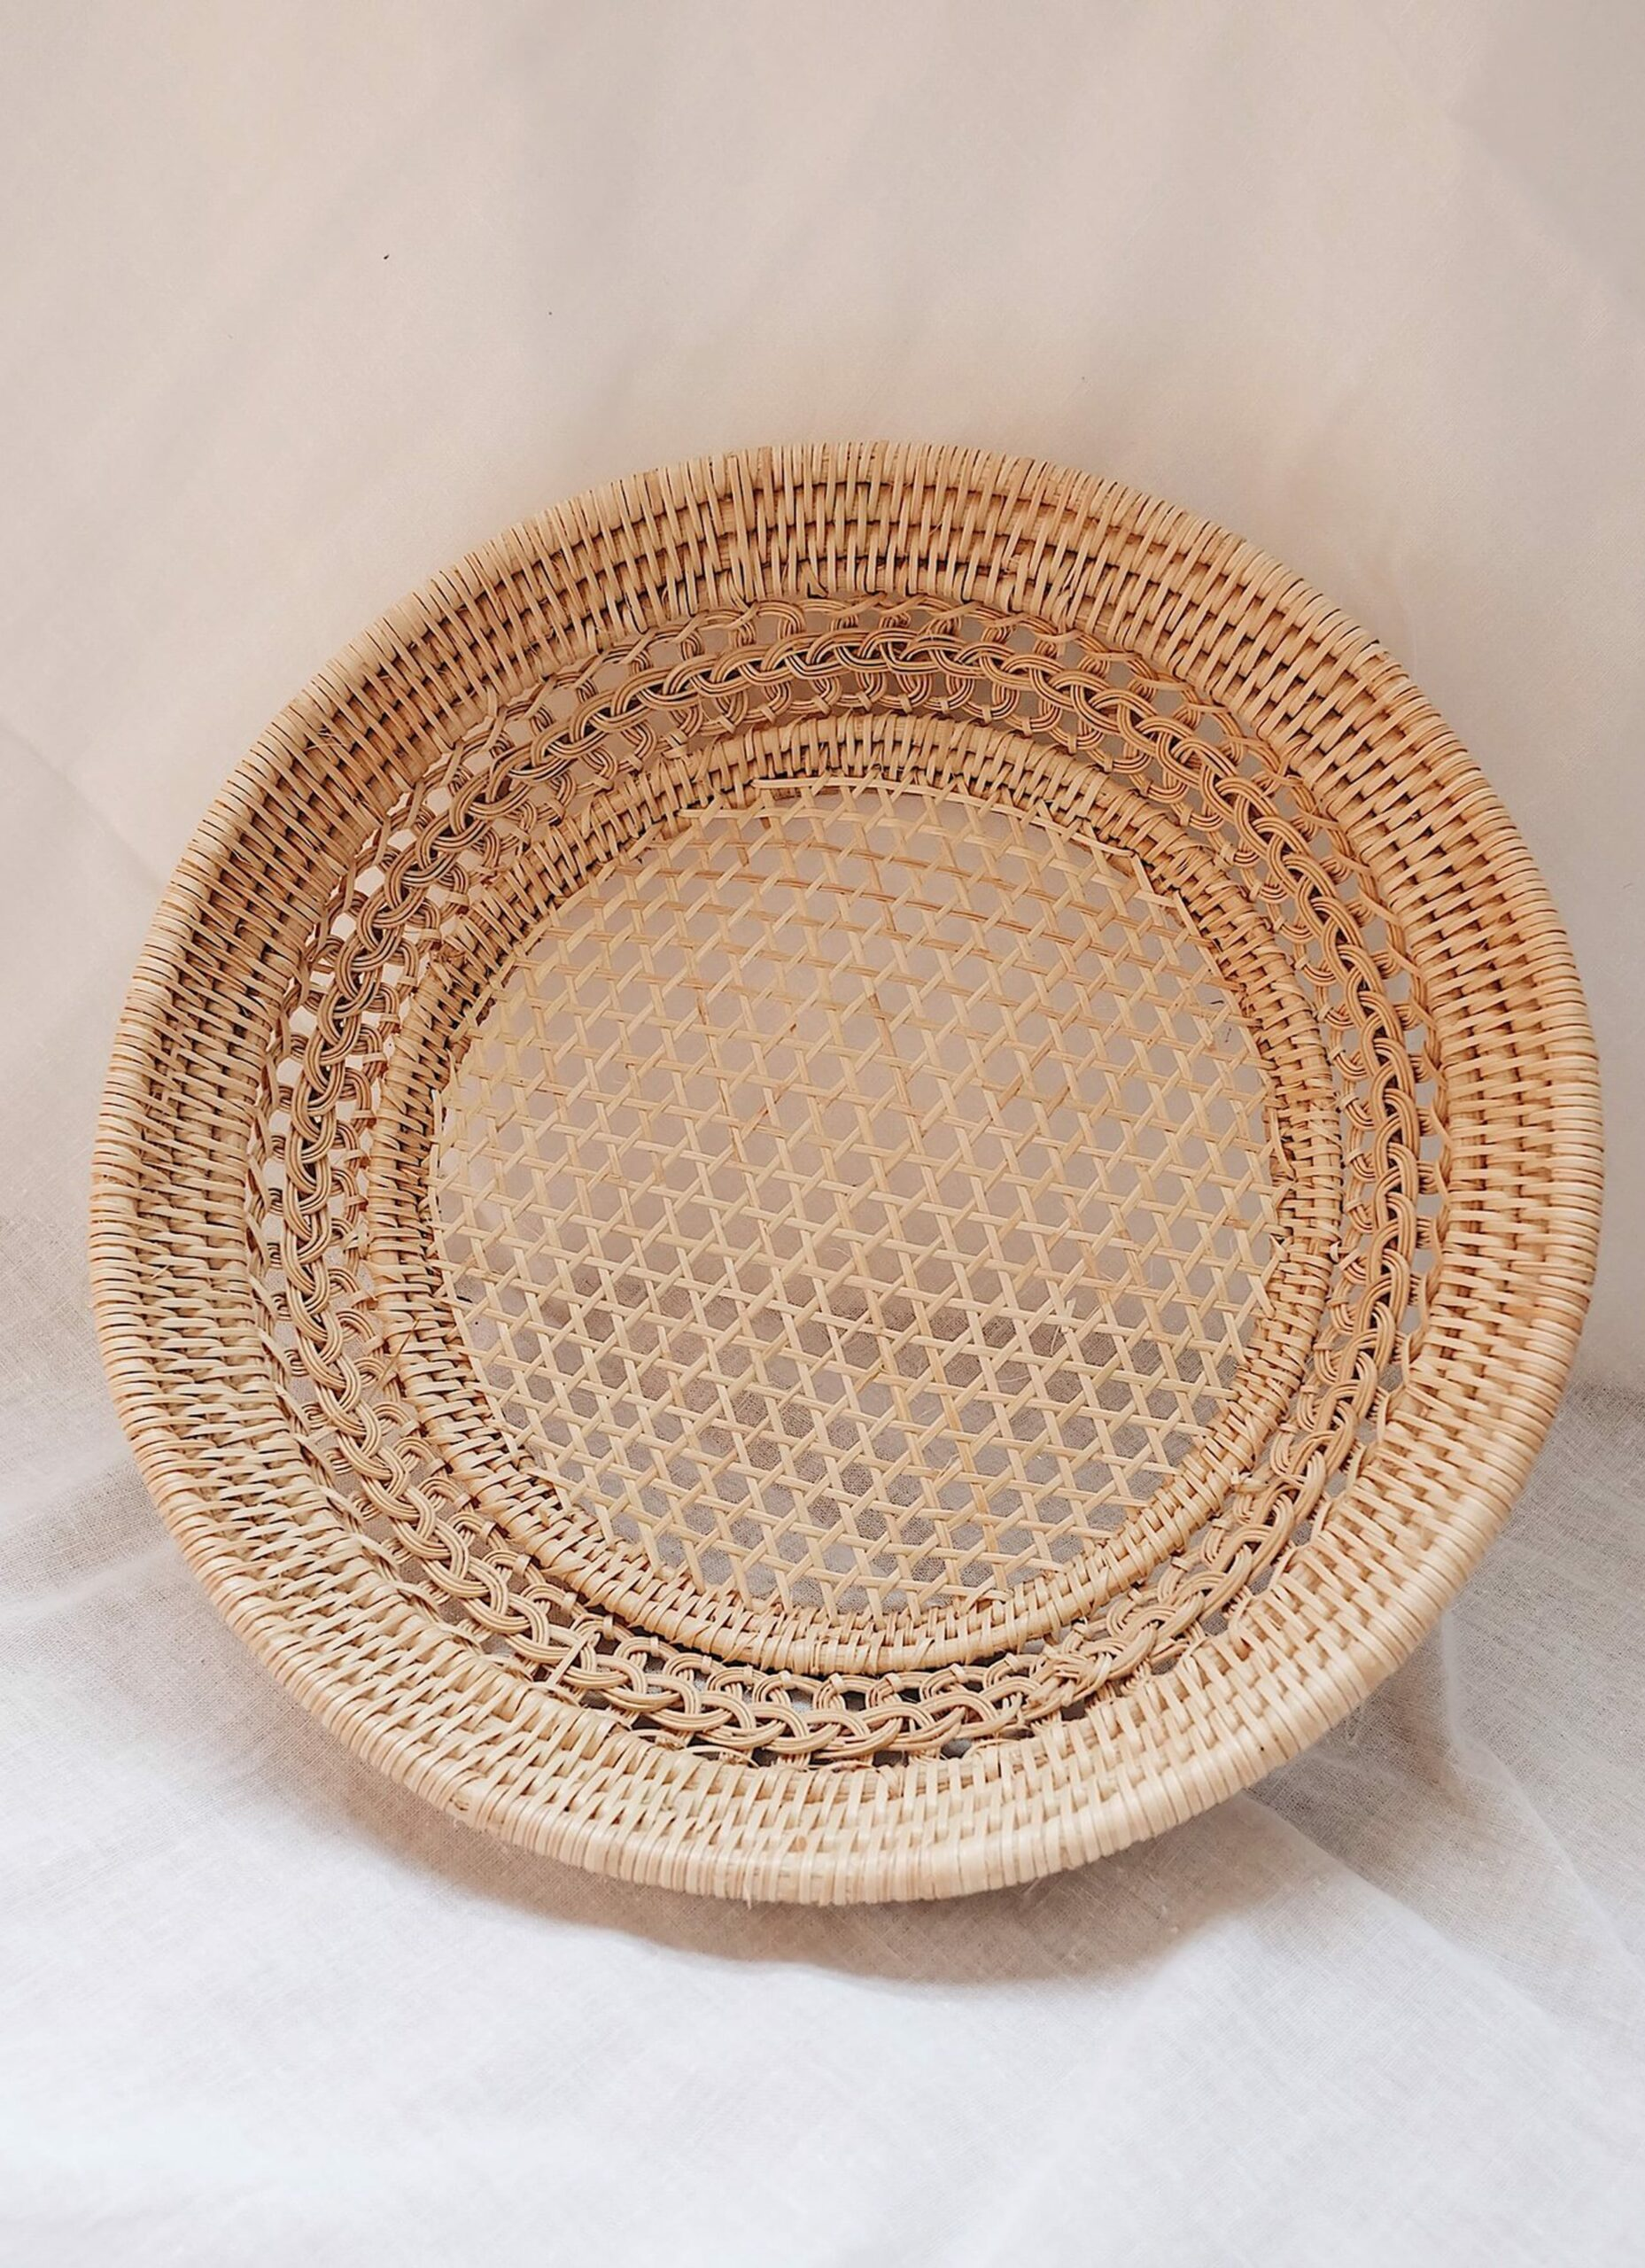 Olive and Iris - Magnolia - Handwoven Rattan Tray